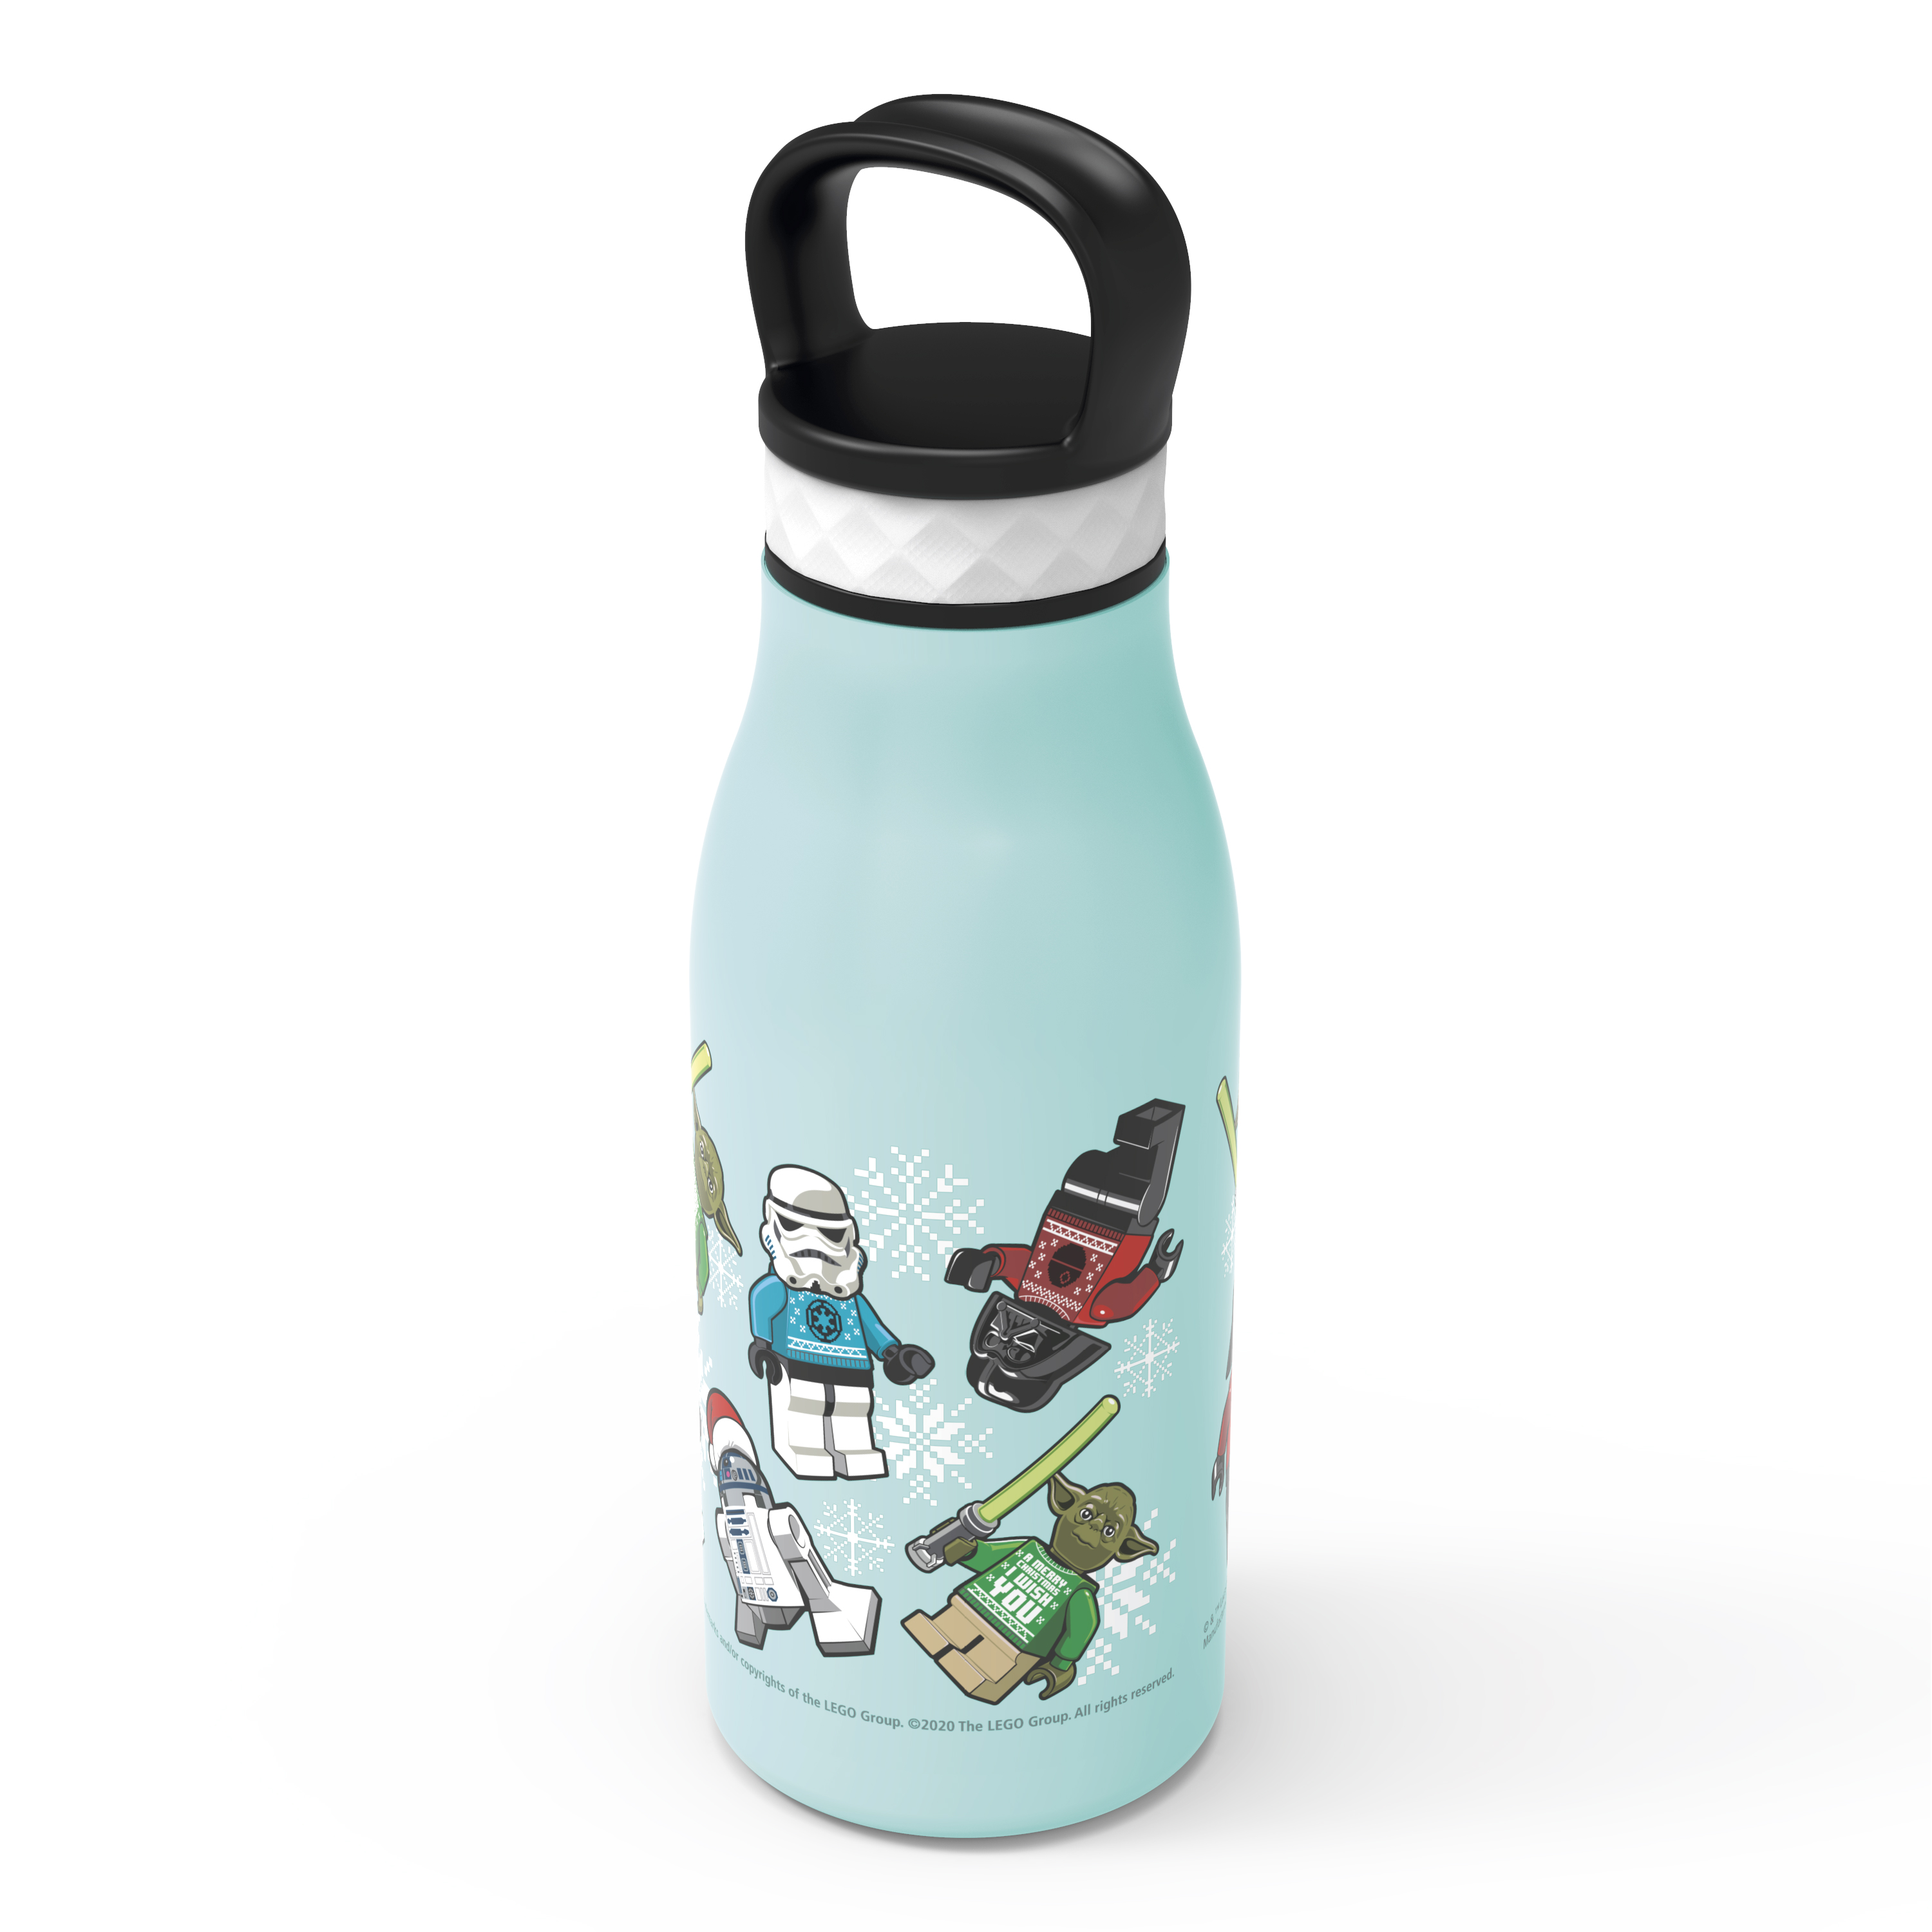 Lego Star Wars 12 ounce Stainless Steel Vacuum Insulated Water Bottle, Darth Vader, Stormtroopers and Yoda slideshow image 2